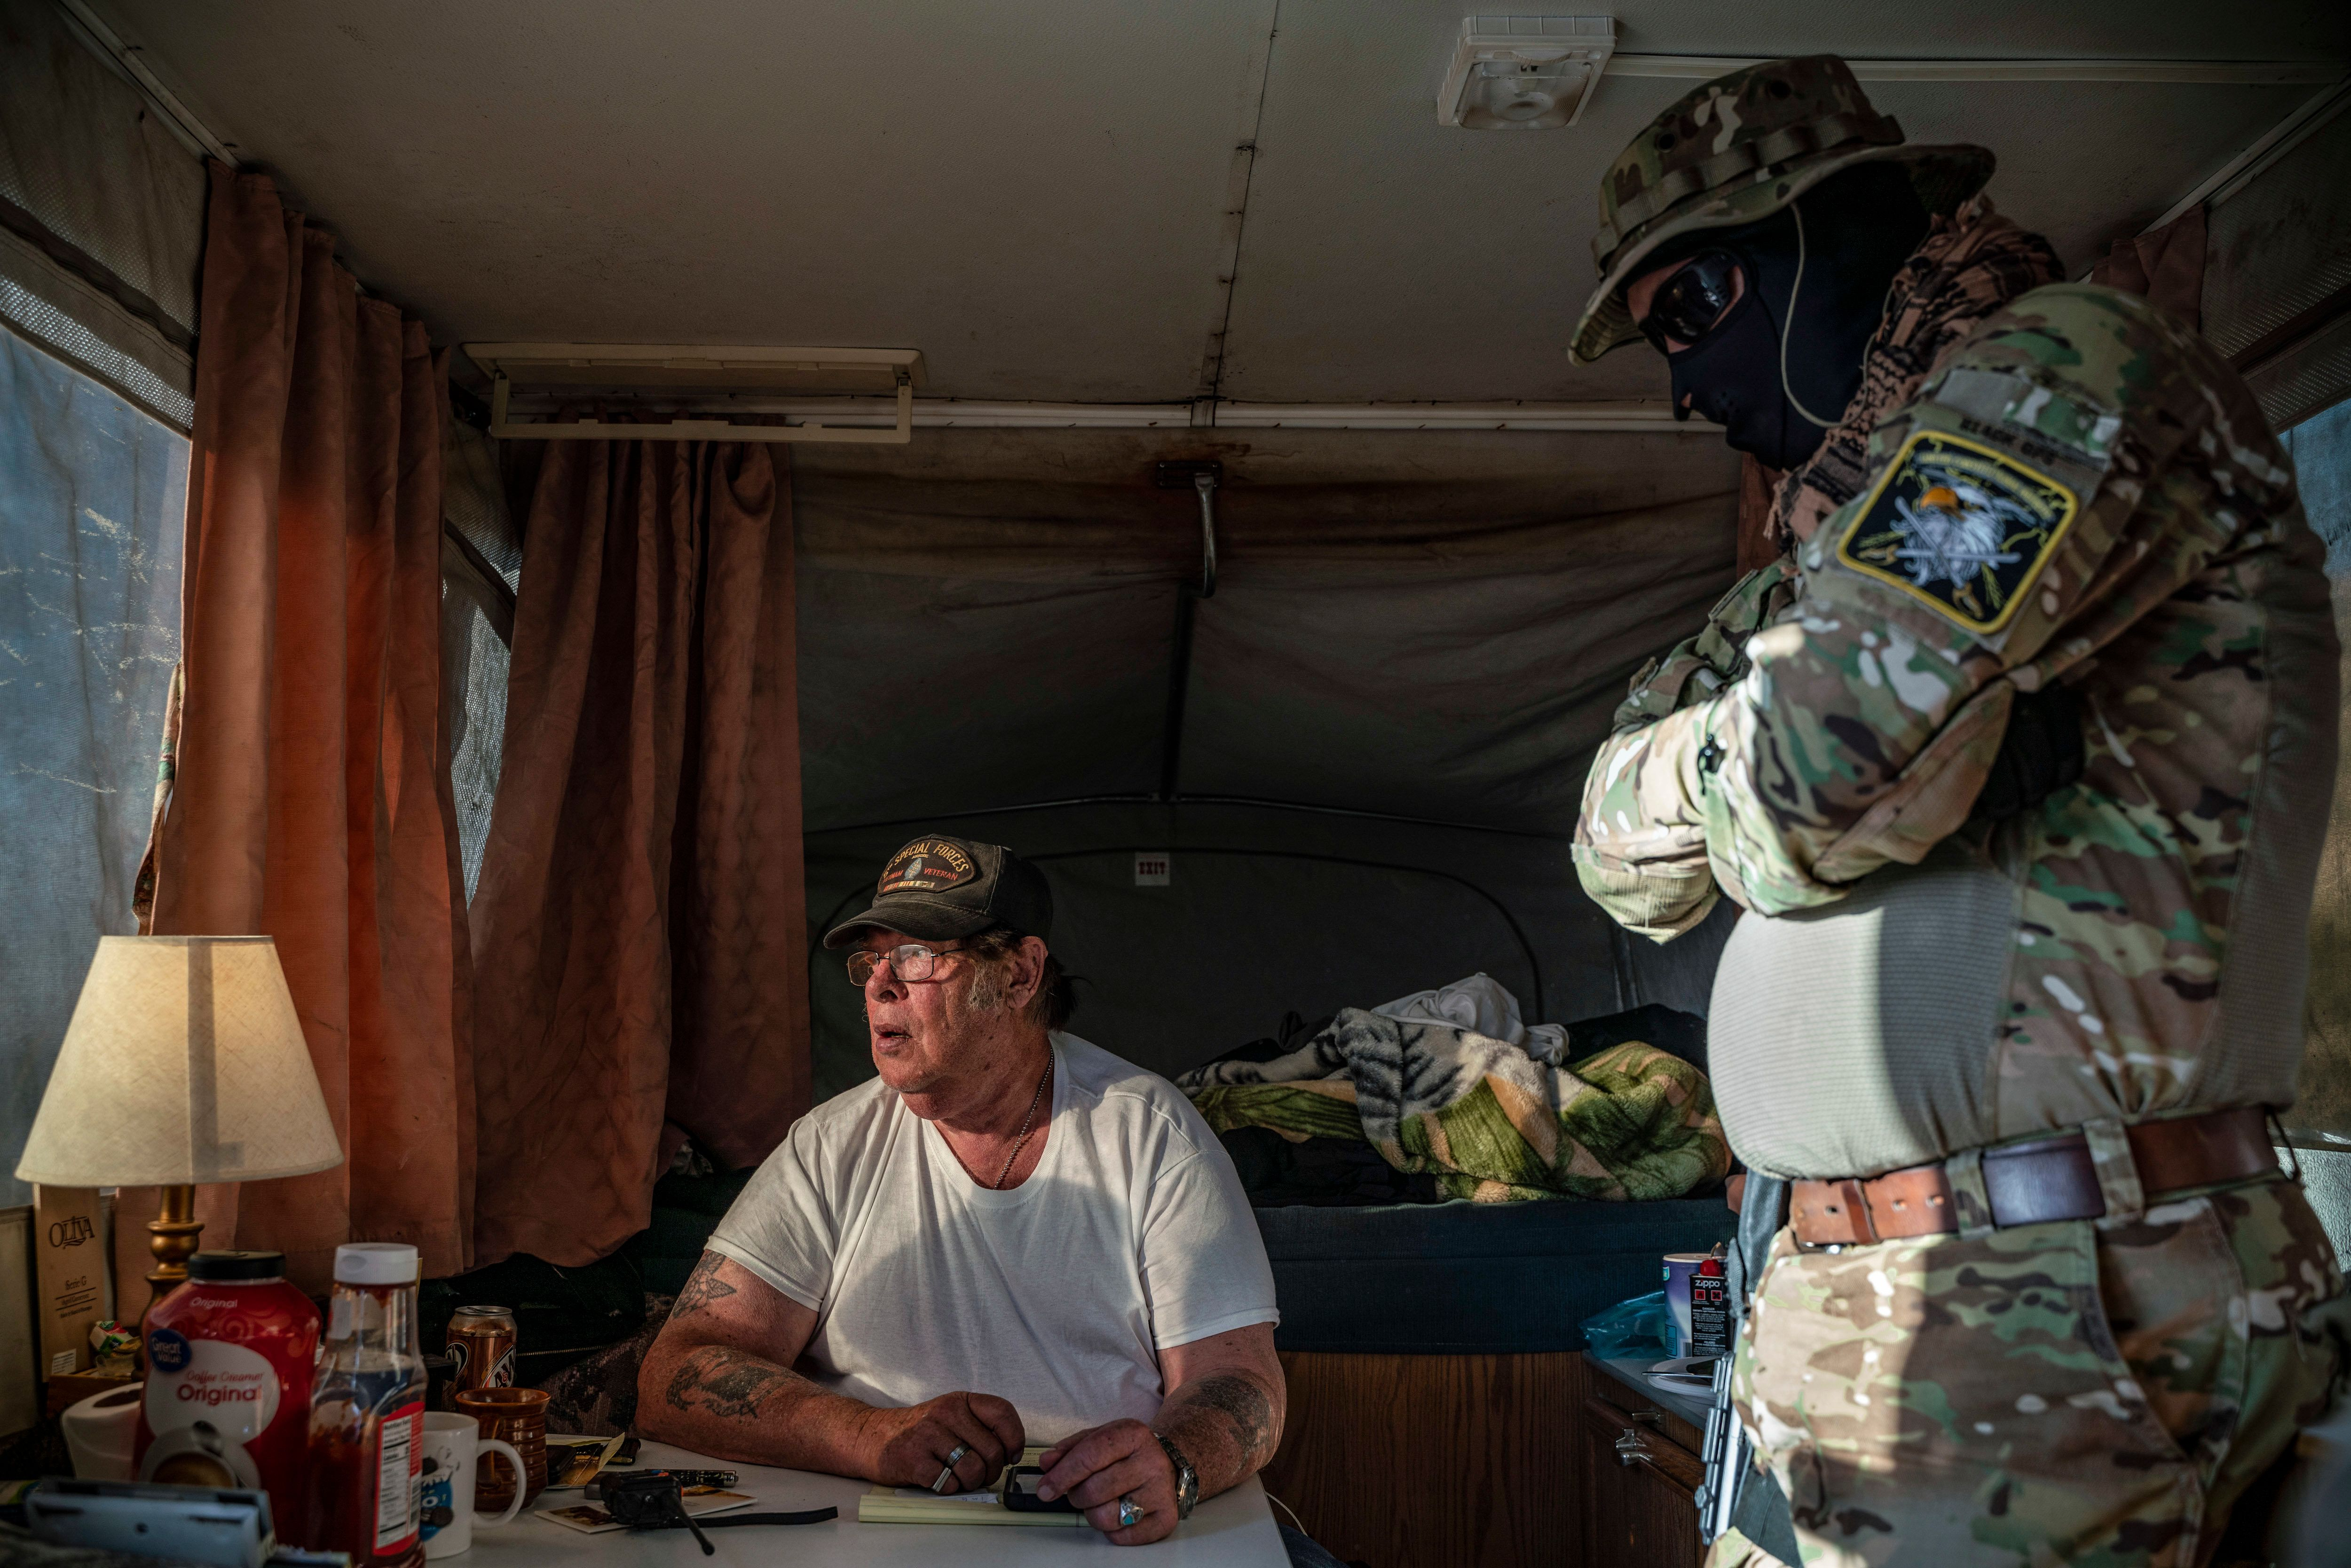 Striker, the leader of the Constitutional Patriots New Mexico Border Ops Team militia, speaks with Viper (R),  who go by aliases to protect their identity, inside the team's camper while discussing logistics on a group chat near the US-Mexico border in Anapra, New Mexico on March 20, 2019. - The militia members say they will patrol the US-Mexico border near Mt. Christo Rey, 'Until the wall is built.' In recent months, thousands of Central Americans have arrived in Mexico in several caravans in the hope of finding a better life in the United States. US President Donald Trump has branded such migrants a threat to national security, demanding billions of dollars from Congress to build a wall on the southern US border. (Photo by Paul Ratje / AFP)        (Photo credit should read PAUL RATJE/AFP/Getty Images)